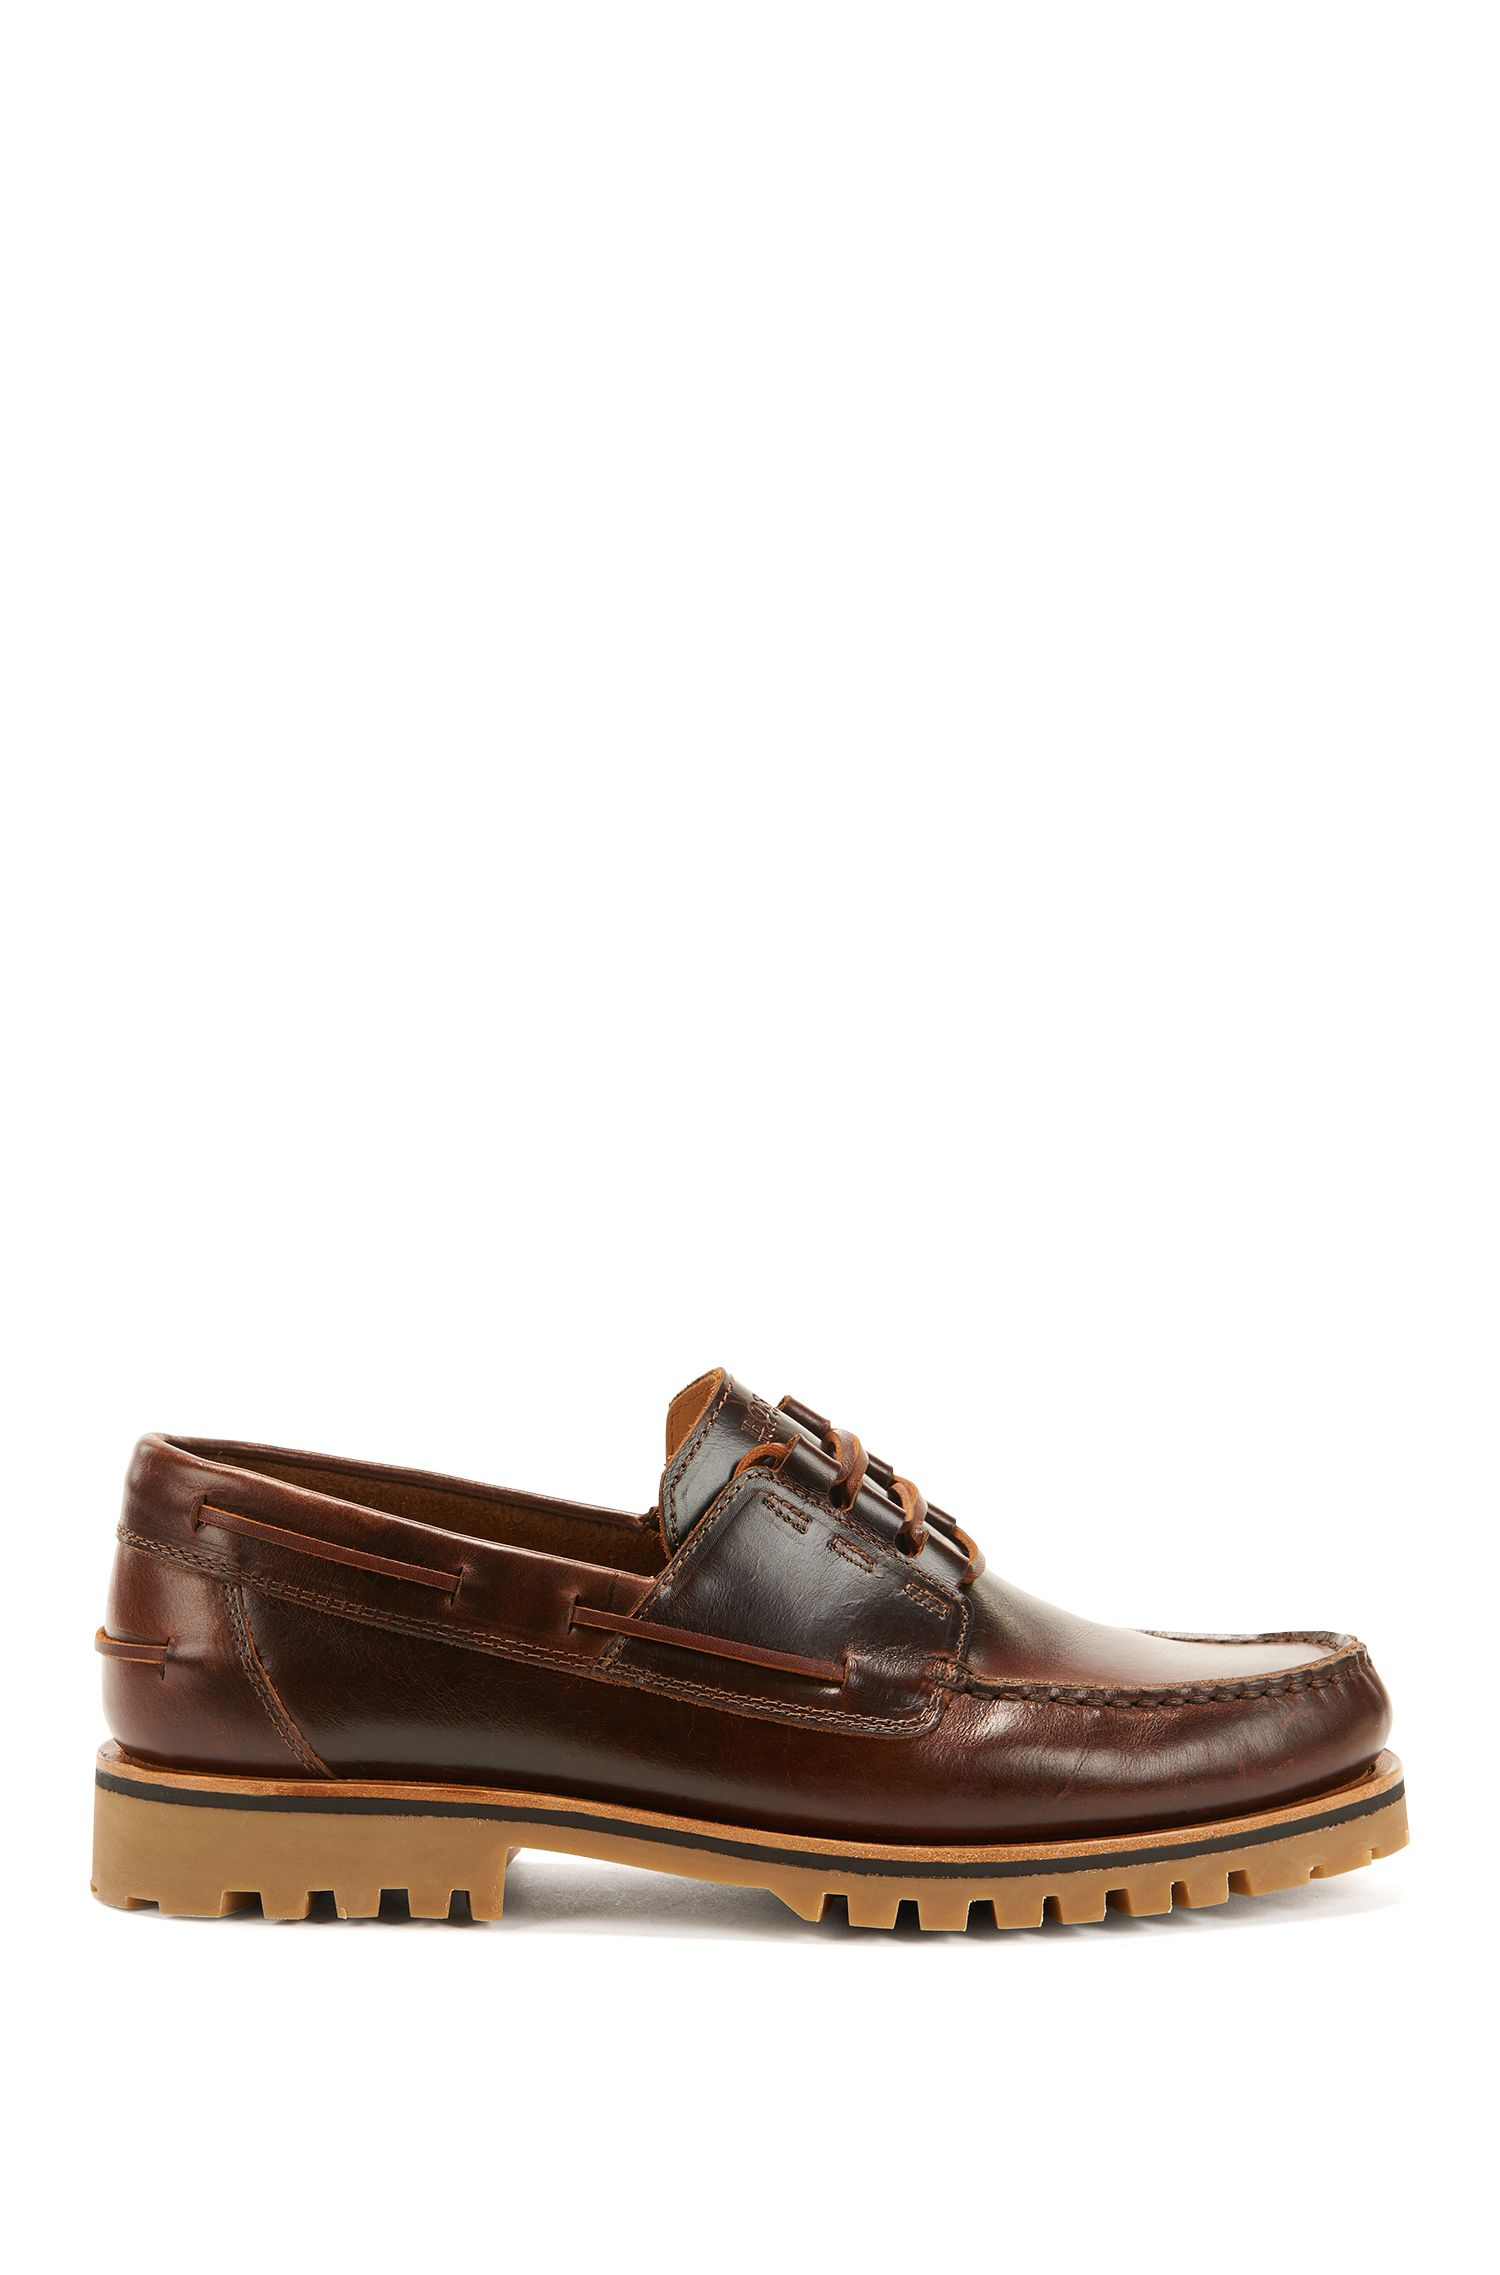 Cleated leather boat shoes with tonal stitching